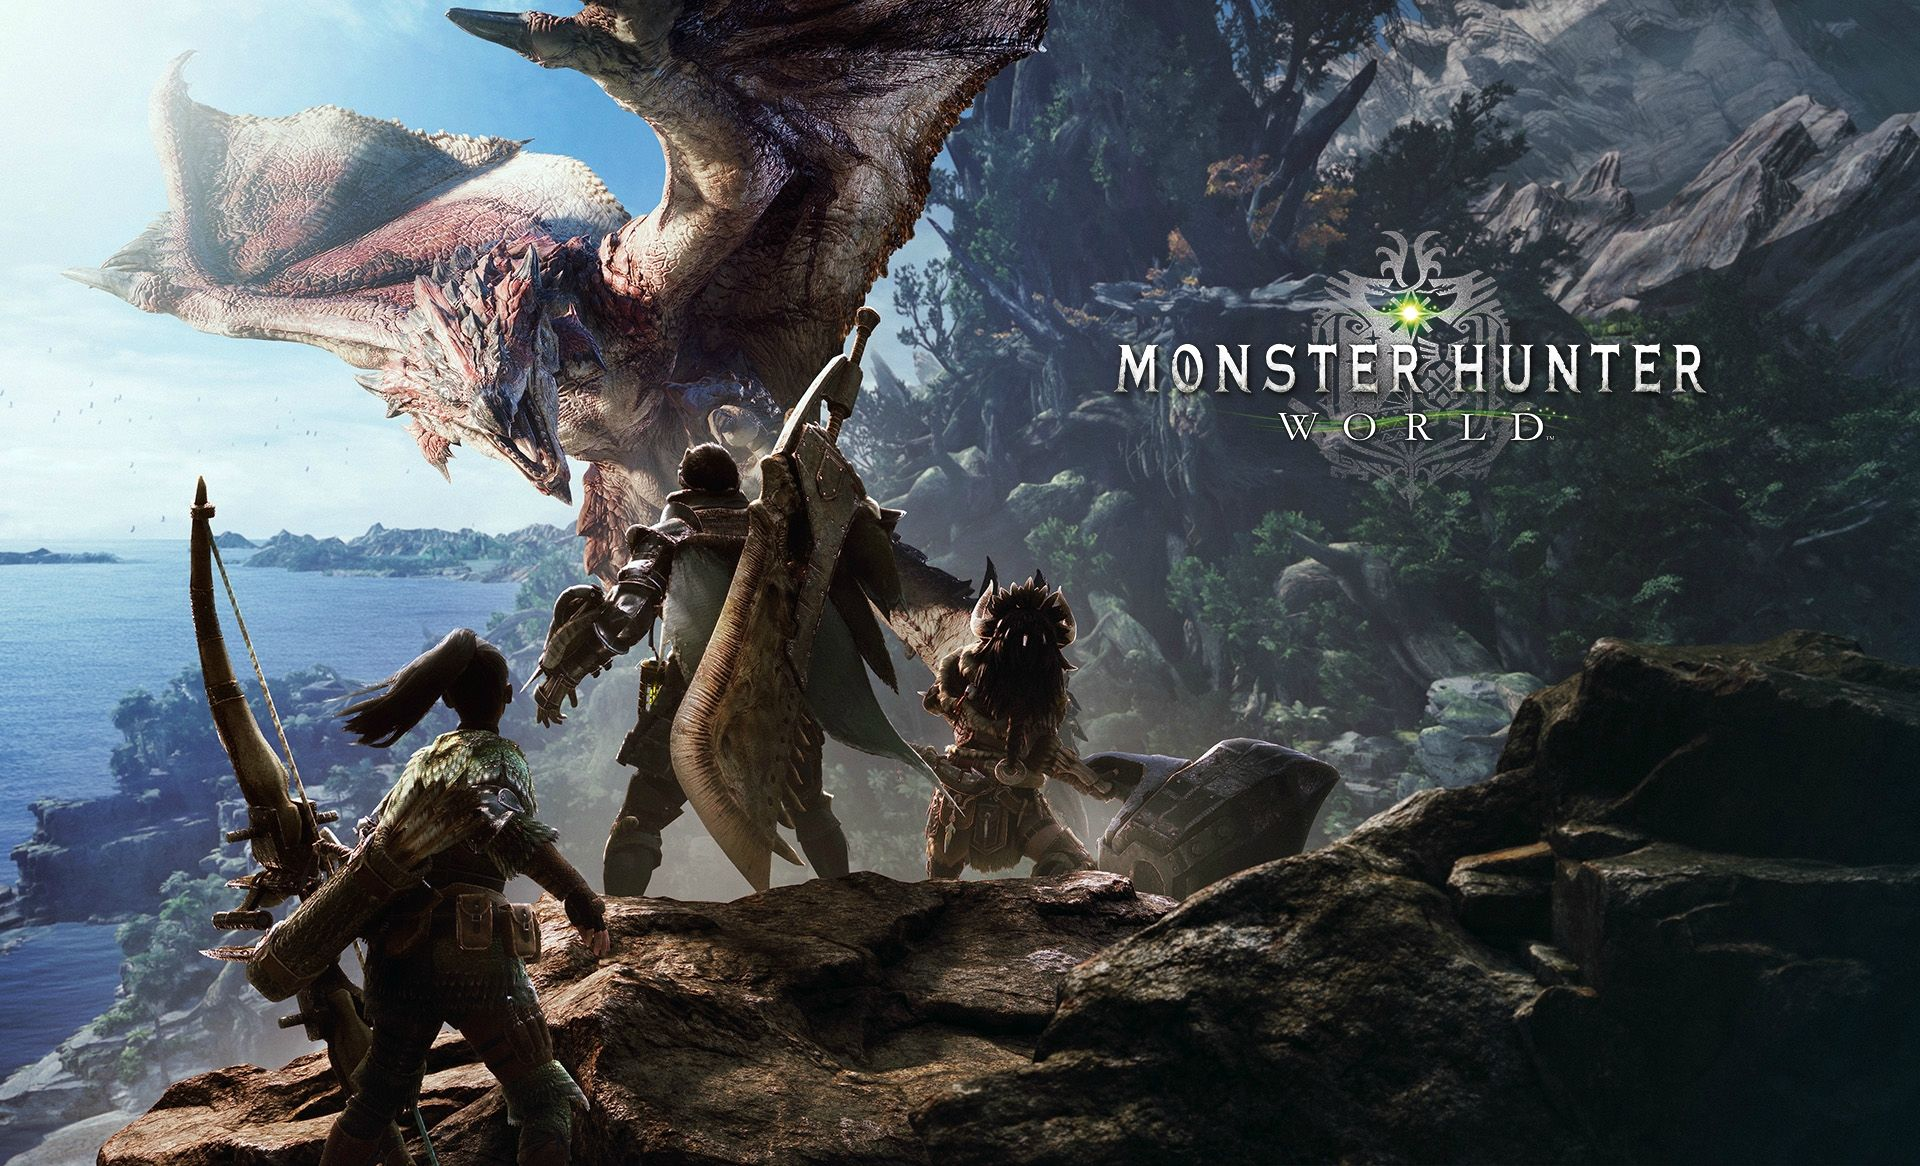 10 Top Monster Hunter World Hd Wallpaper Full Hd 1080p For Pc Desktop Monster Hunter World Wallpaper Monster Hunter World Wallpaper